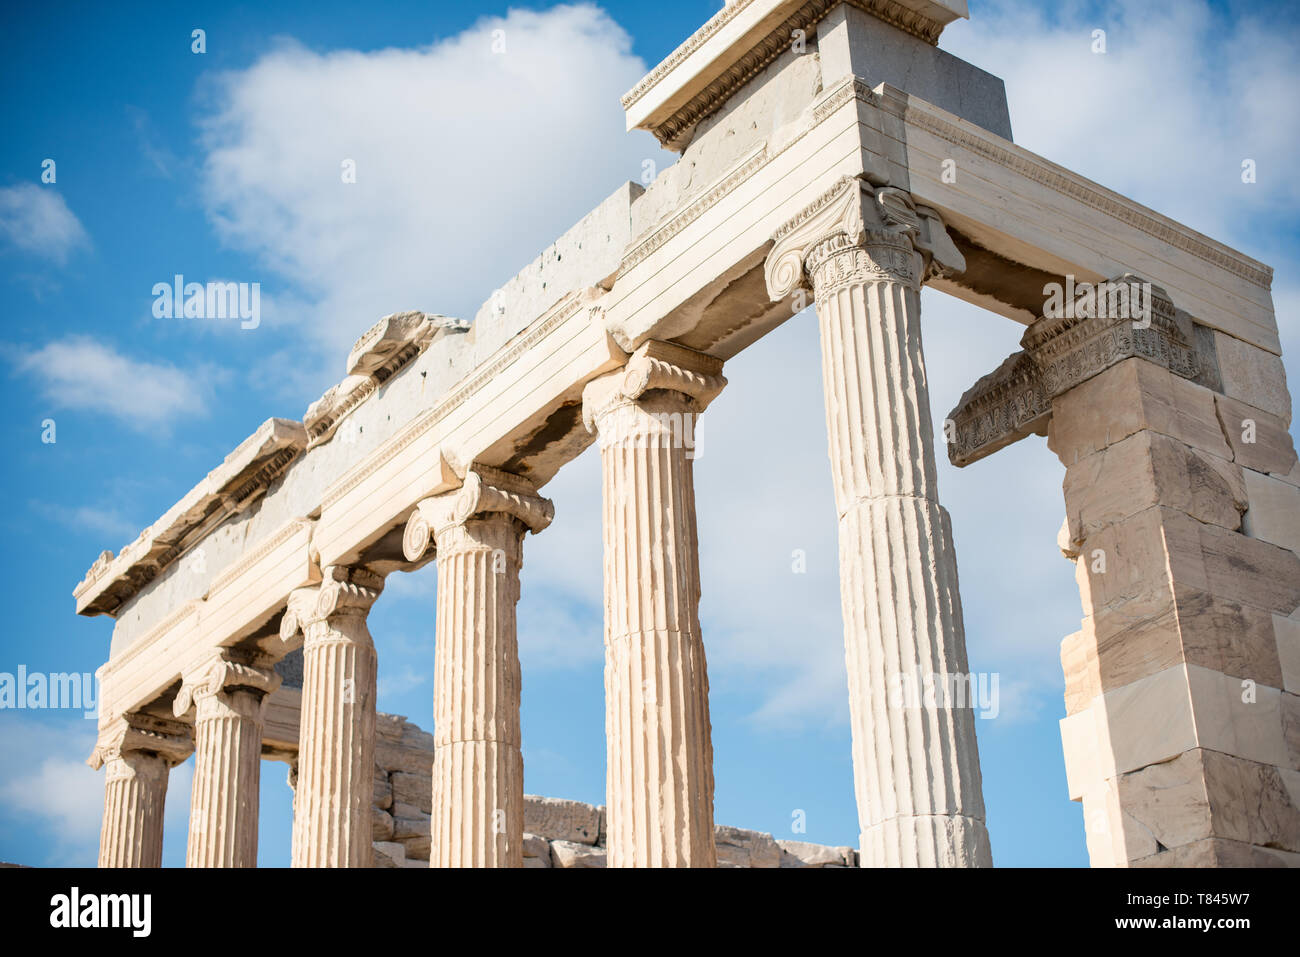 The Erechtheion is a structure on the north side of the Acropolis that was dedicated to the Greek gods Athena and Poseidon. The Acropolis of Athens is - Stock Image